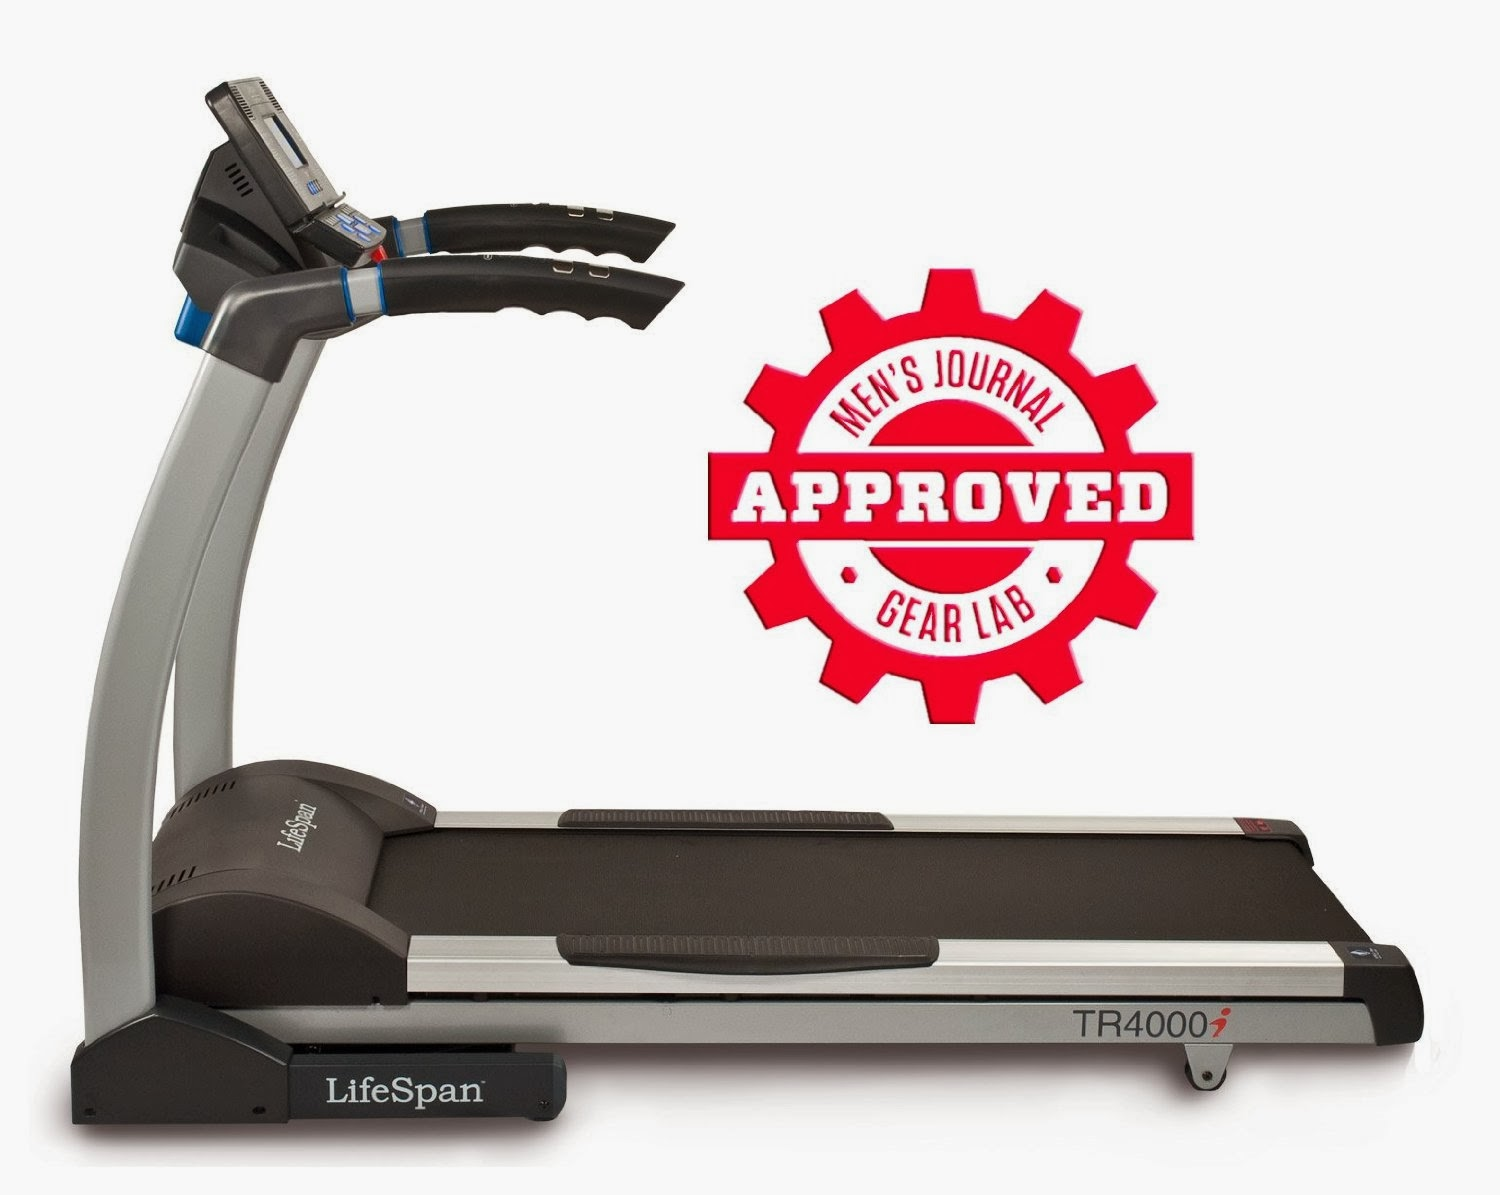 LifeSpan Fitness TR4000i Folding Treadmill, picture, review features & specifications, compare with LifeSpan Fitness TR3000i